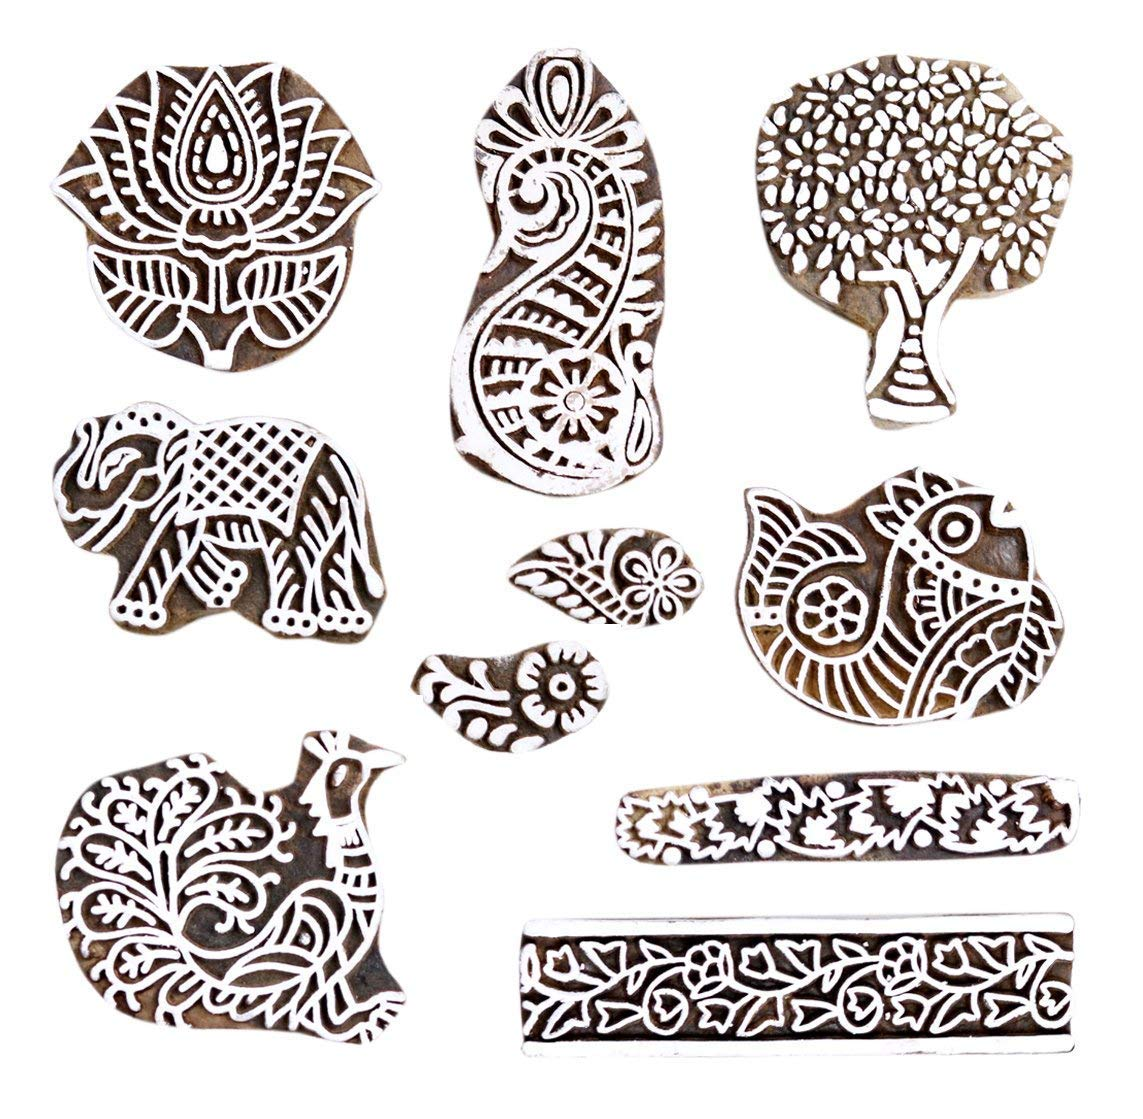 PARIJAT HANDICRAFT Printing Stamps Mughal Design Wooden Blocks (Set of 10) Hand-Carved for Saree Border Making Pottery Crafts Textile Printing